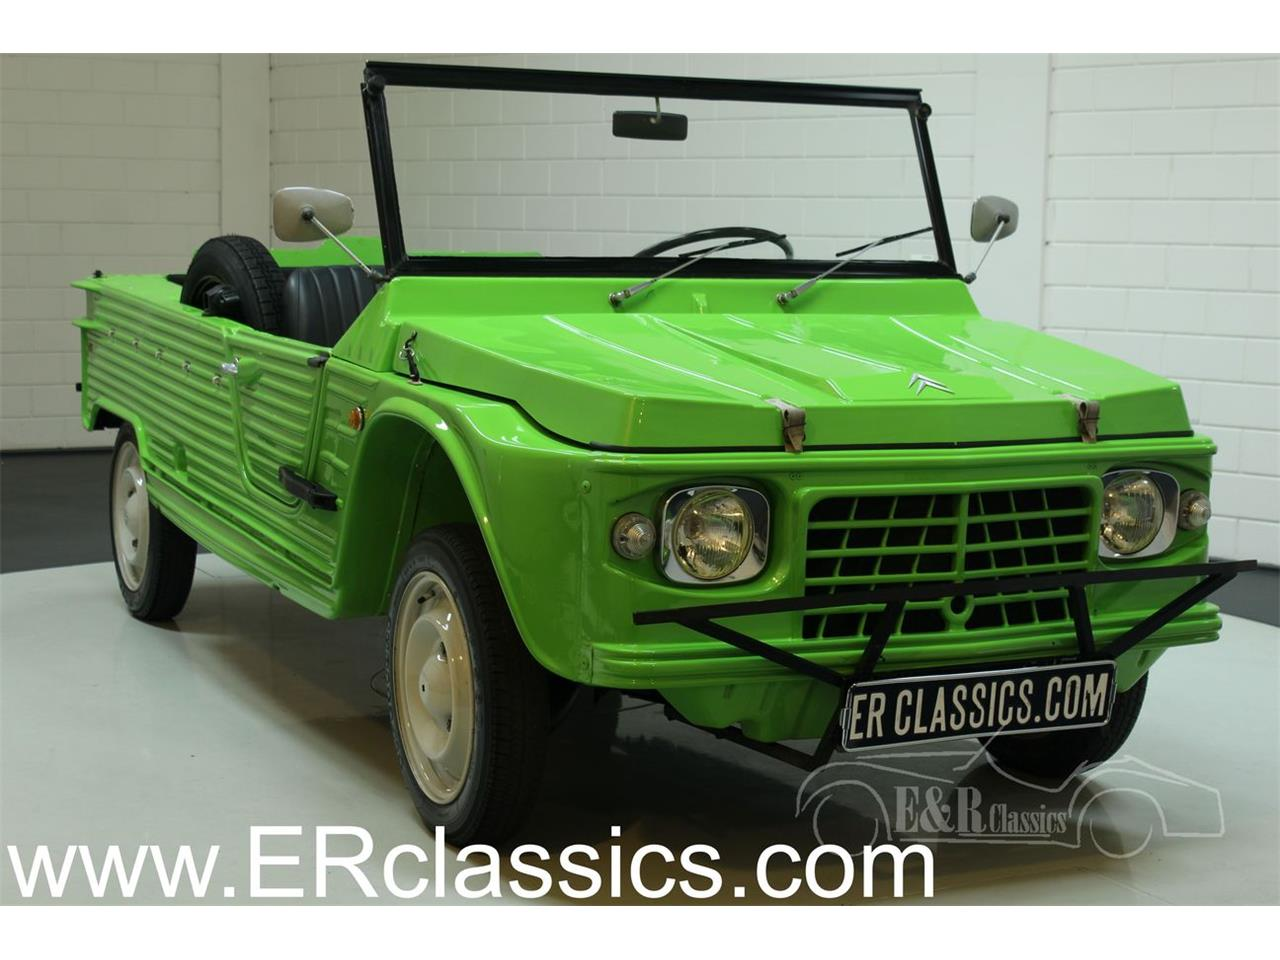 Large Picture of 1976 Citroen Mehari located in Waalwijk - Keine Angabe - - $22,850.00 Offered by E & R Classics - PAGX